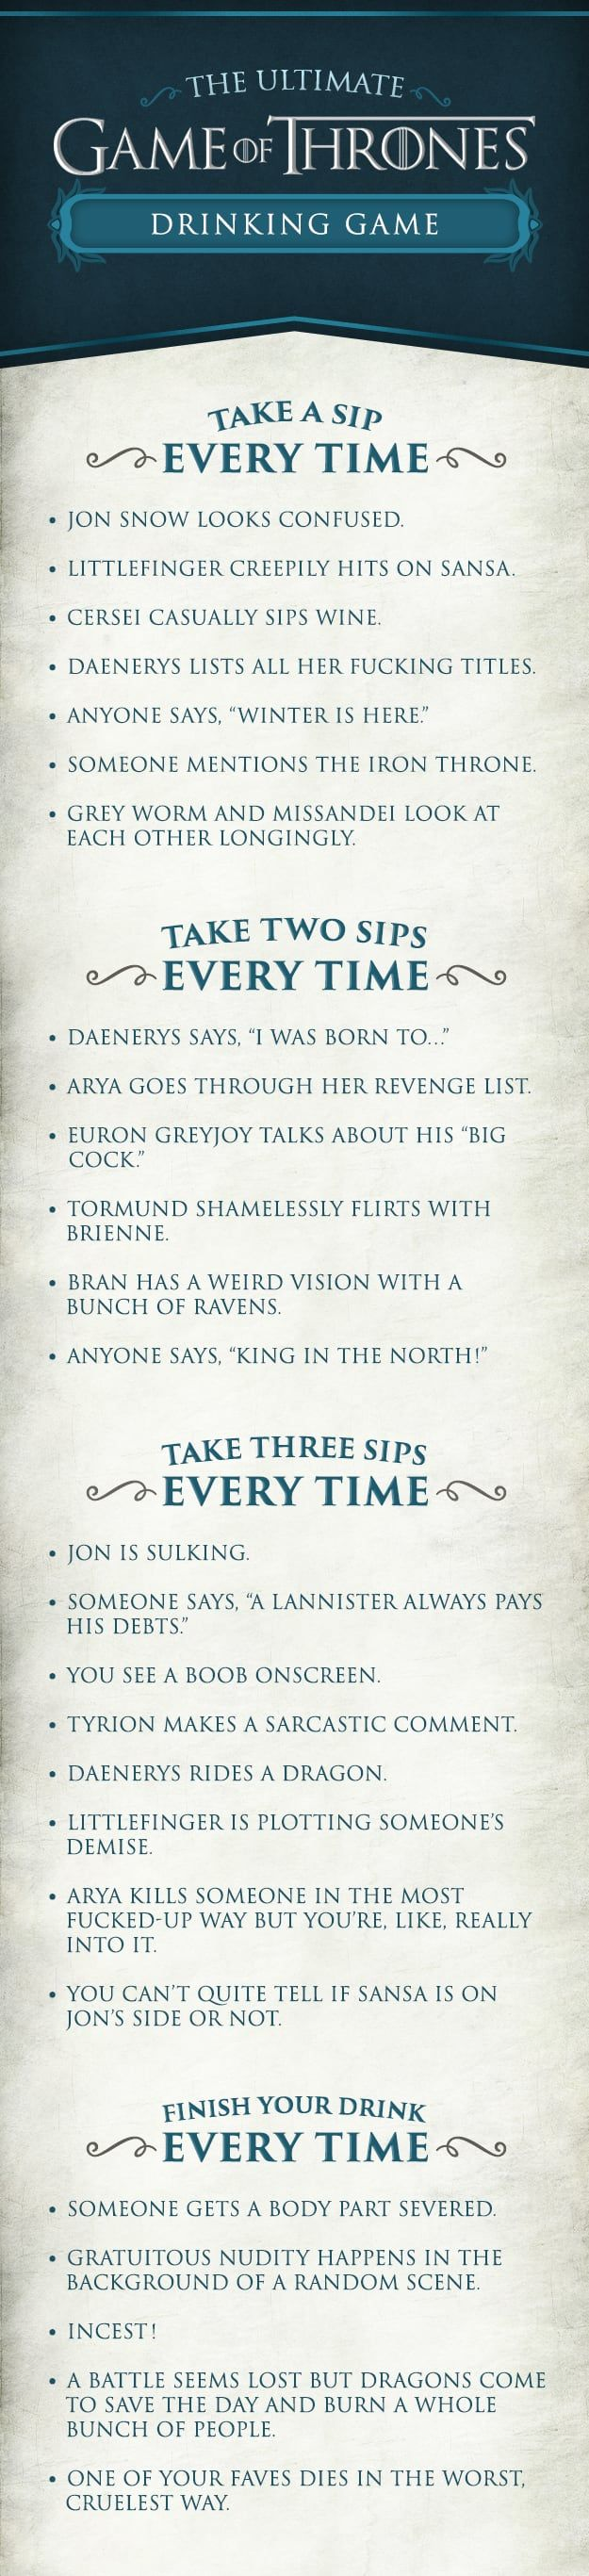 Here's How To Throw The Ultimate Game Of Thrones Party (if you want to get drunk fast )